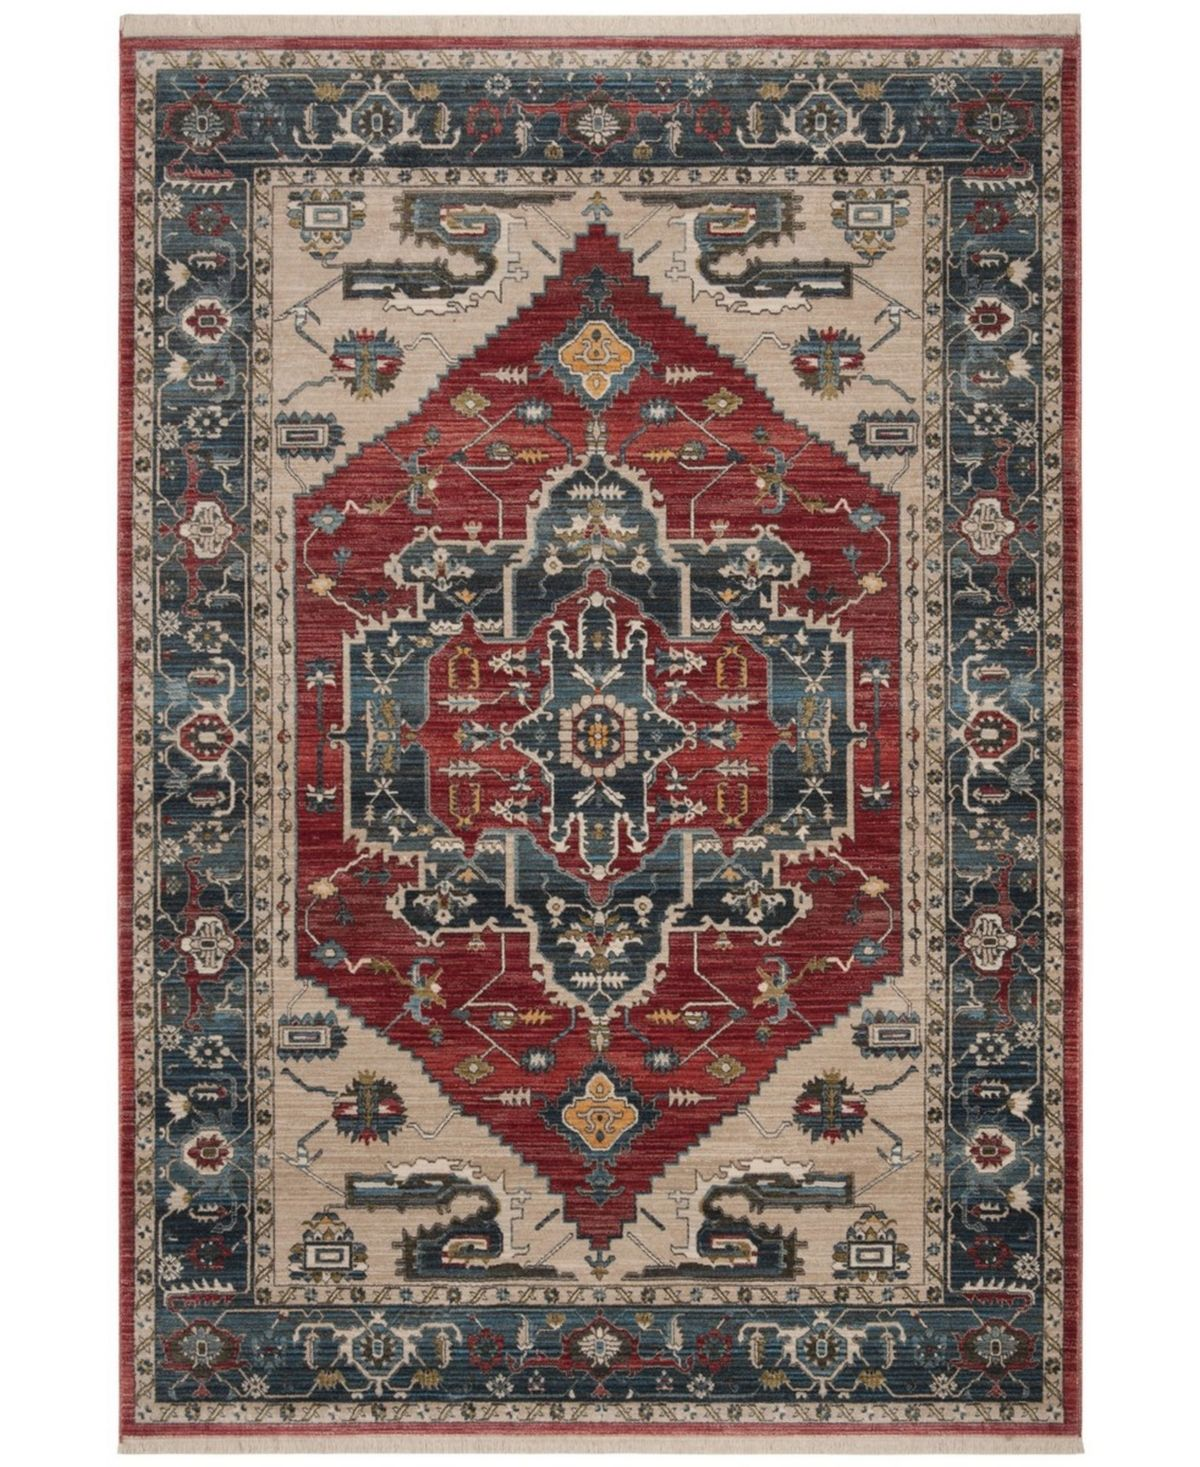 Safavieh Vintage Persian Red And Blue 5 X 7 6 Area Rug Red